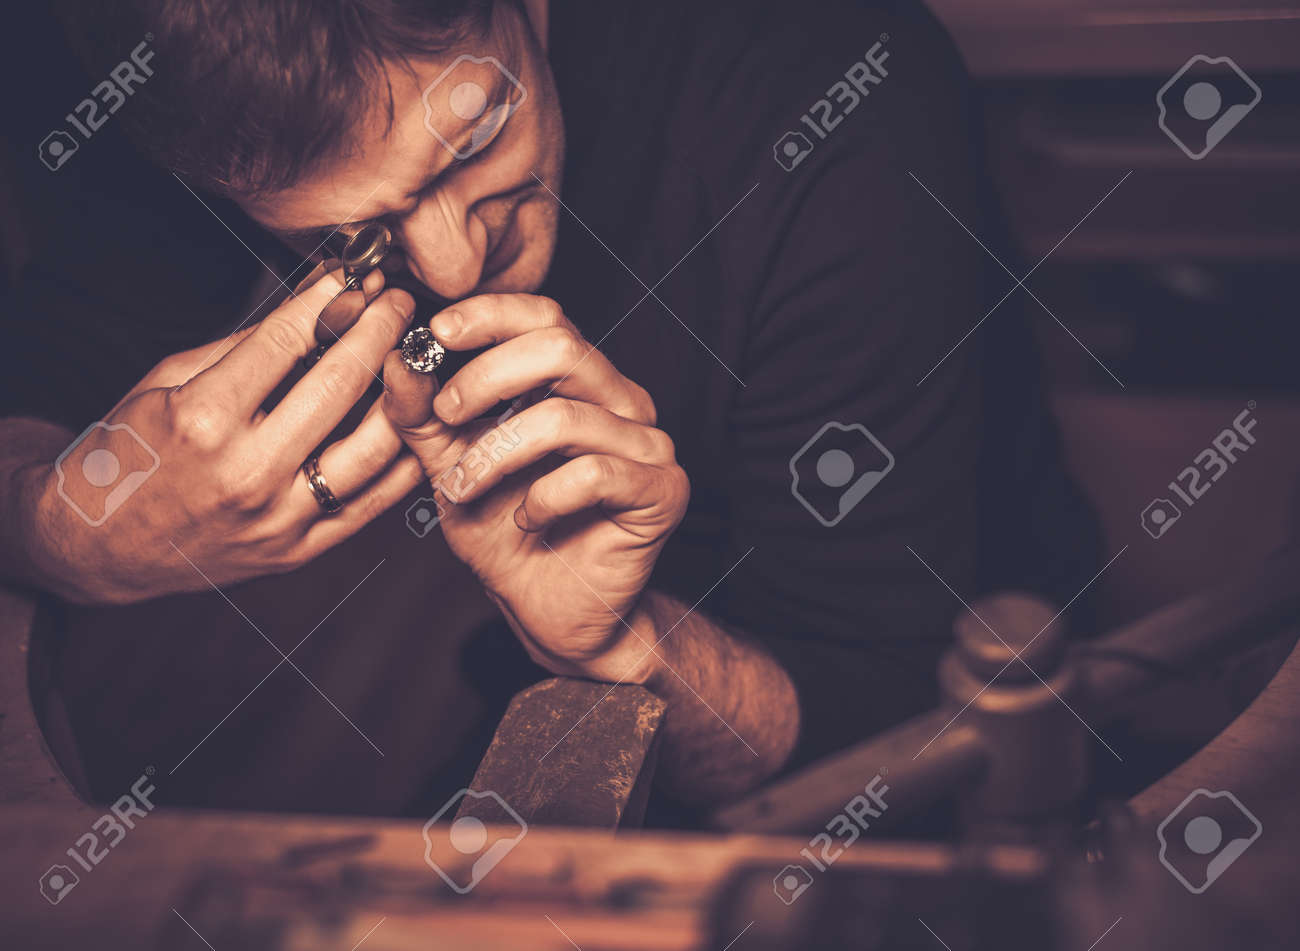 Portrait of a jeweler during the evaluation of jewels. Stock Photo - 50662032